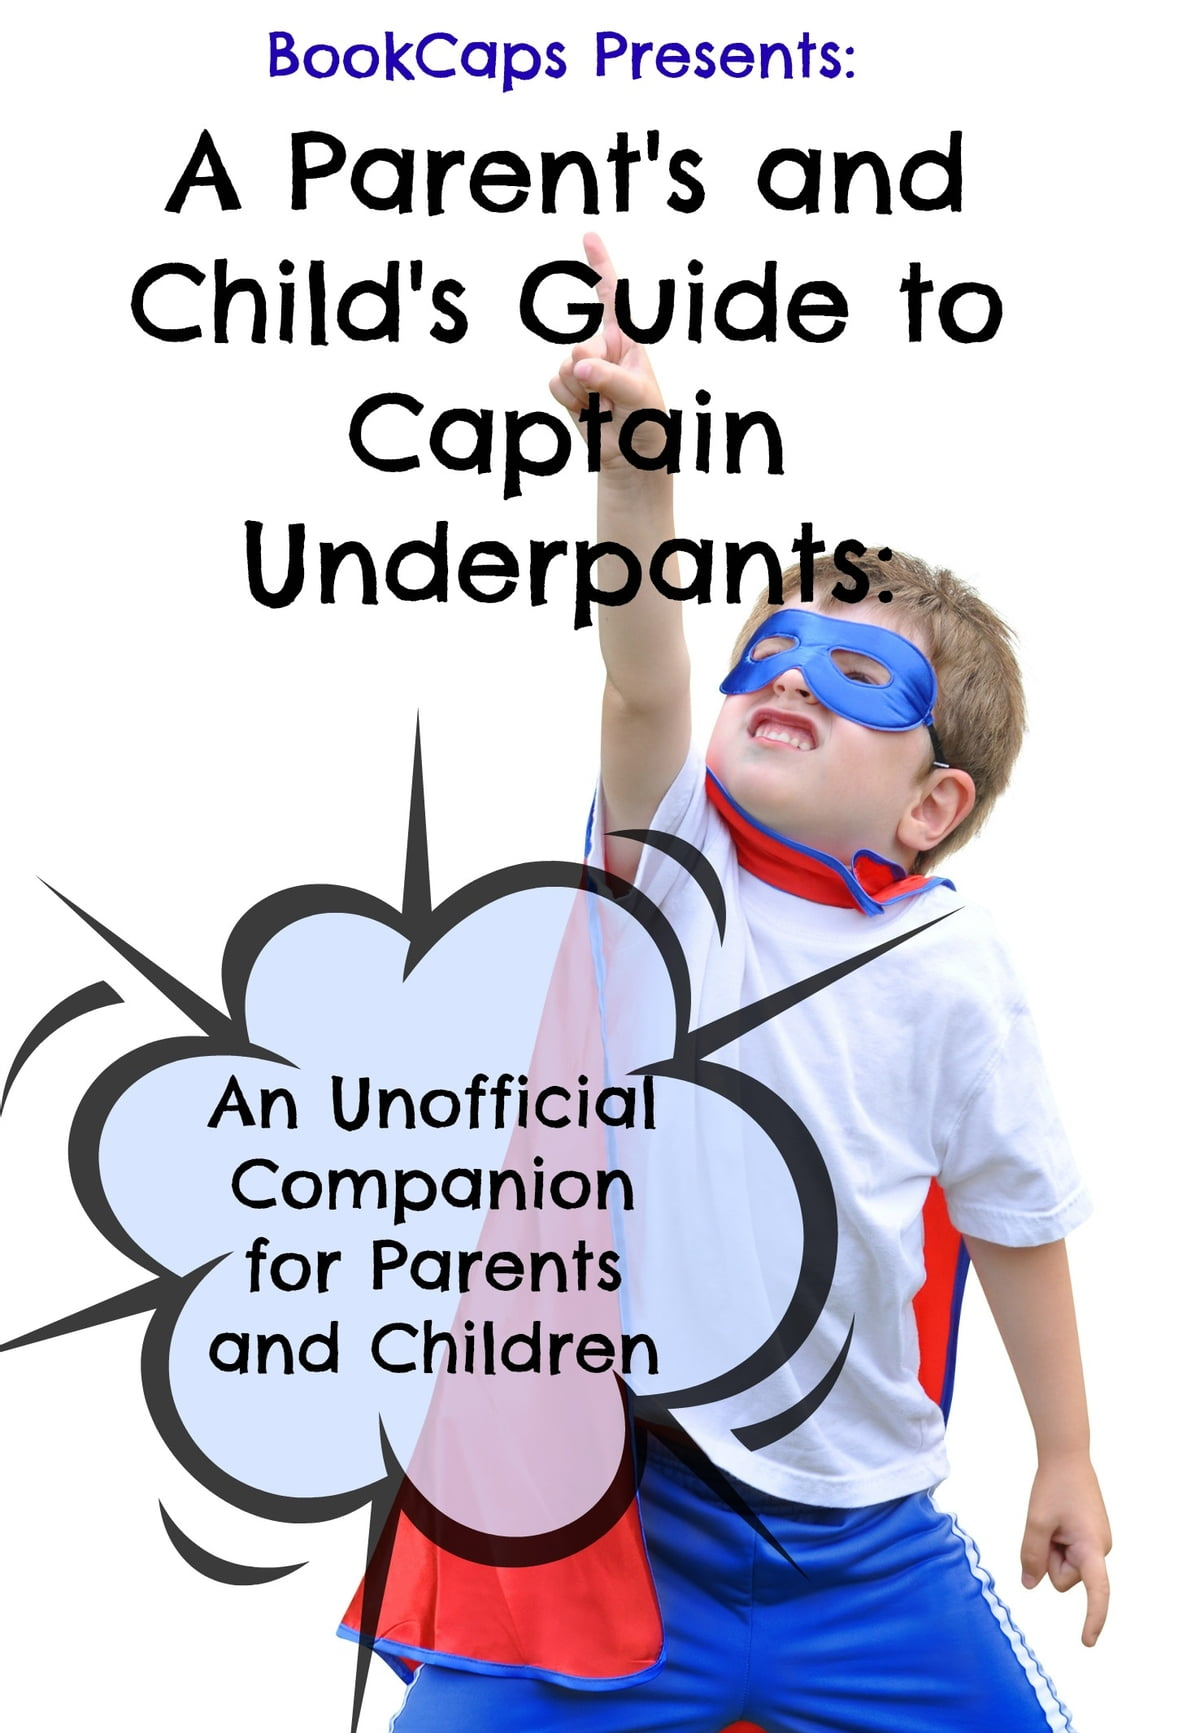 A Parent's and Child's Guide to Captain Underpants: An Unofficial Companion  for Parents and Children ebook by BookCaps - Rakuten Kobo